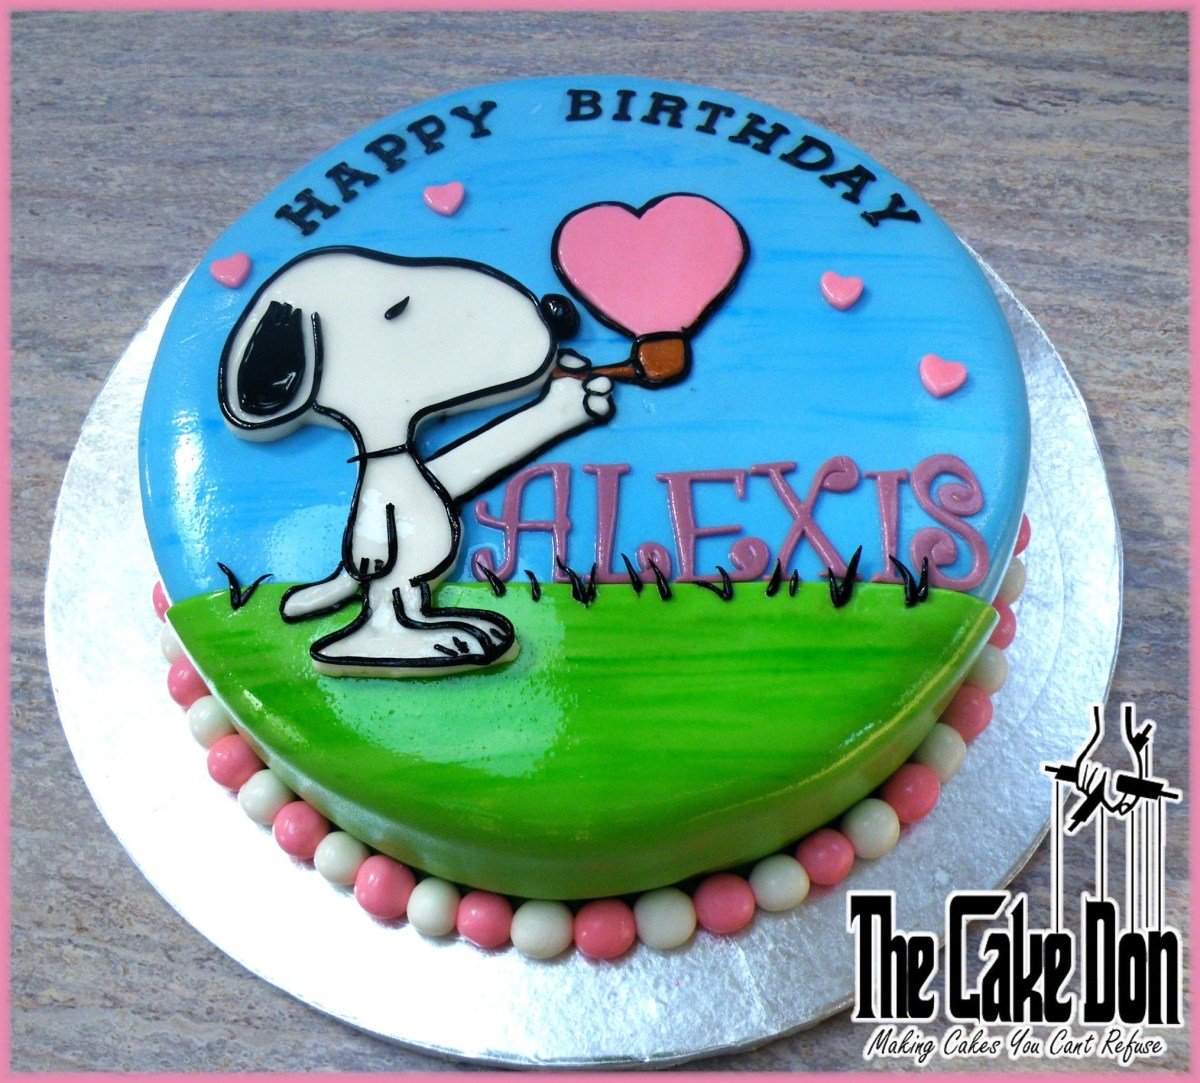 Sensational Snoopy Birthday Cake The Snoopy Love Bubble Birthday Cake The Cake Funny Birthday Cards Online Alyptdamsfinfo